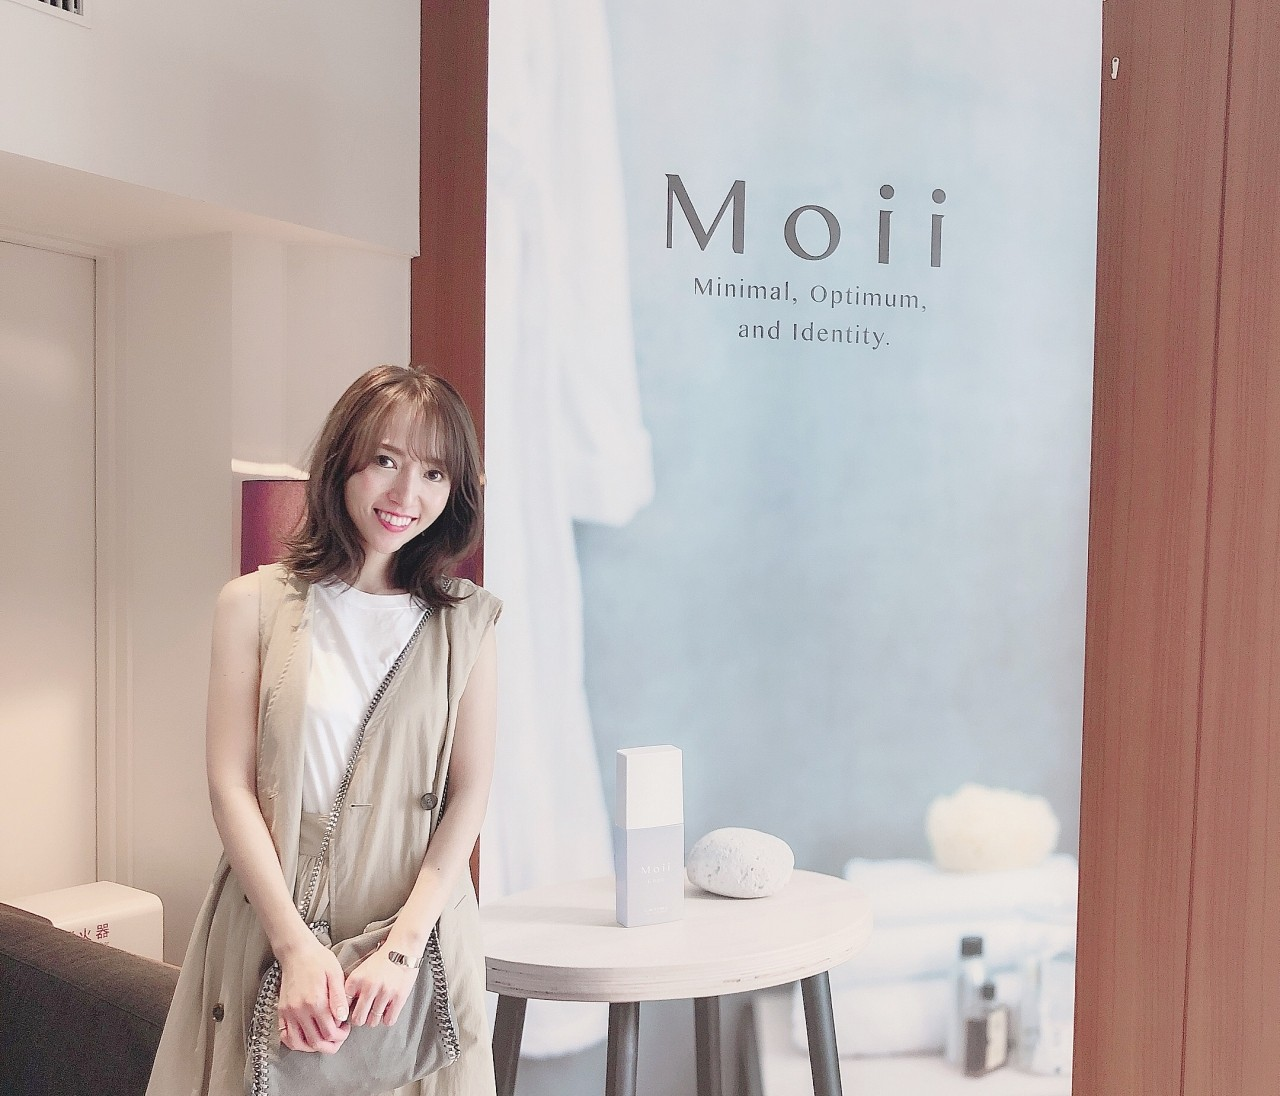 【Moii カフェ 新商品イベント】